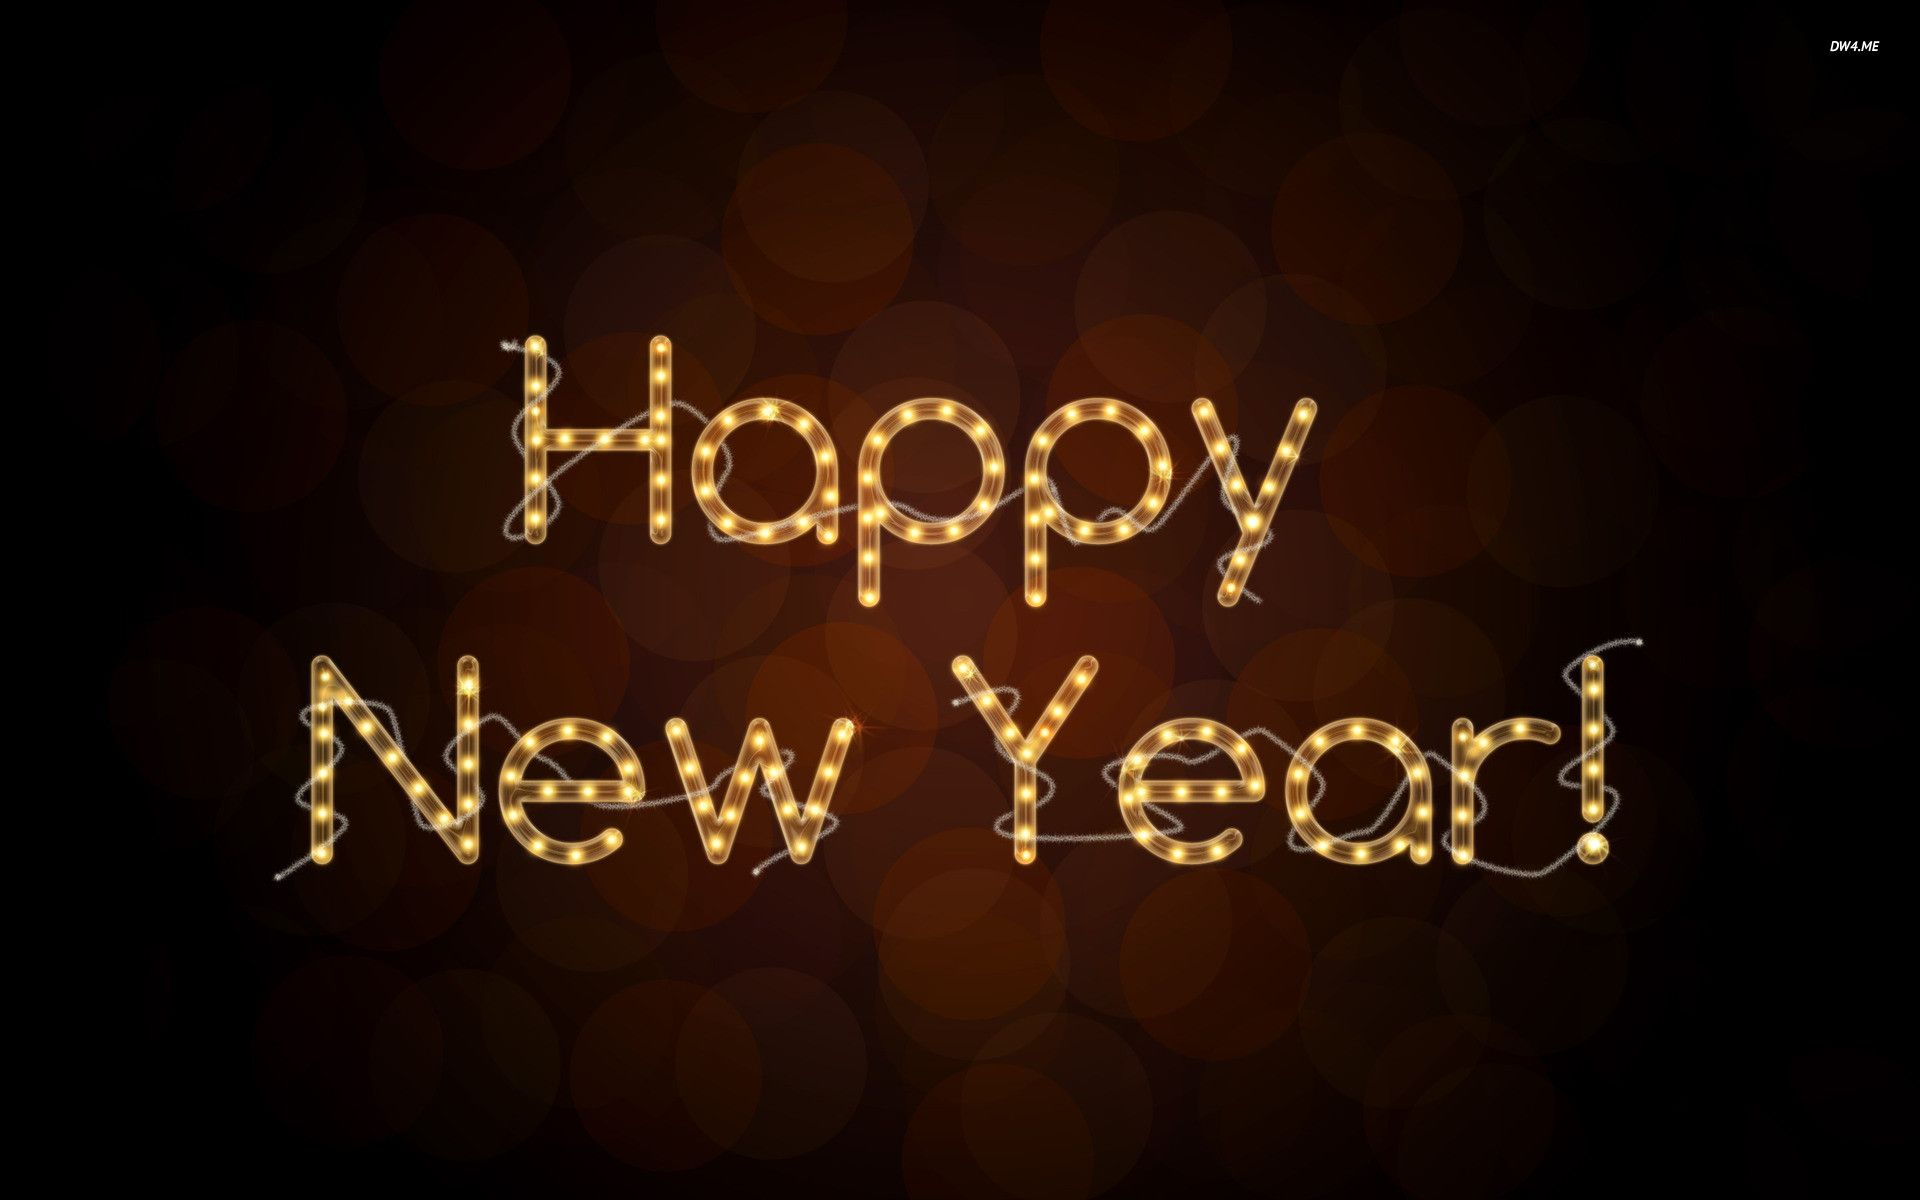 1920x1200 Happy New Year Full Hd Images Hd Wallpapers Download Free Background Wallpap Happy New Year Wallpaper New Year Wishes Images Happy New Year Greetings